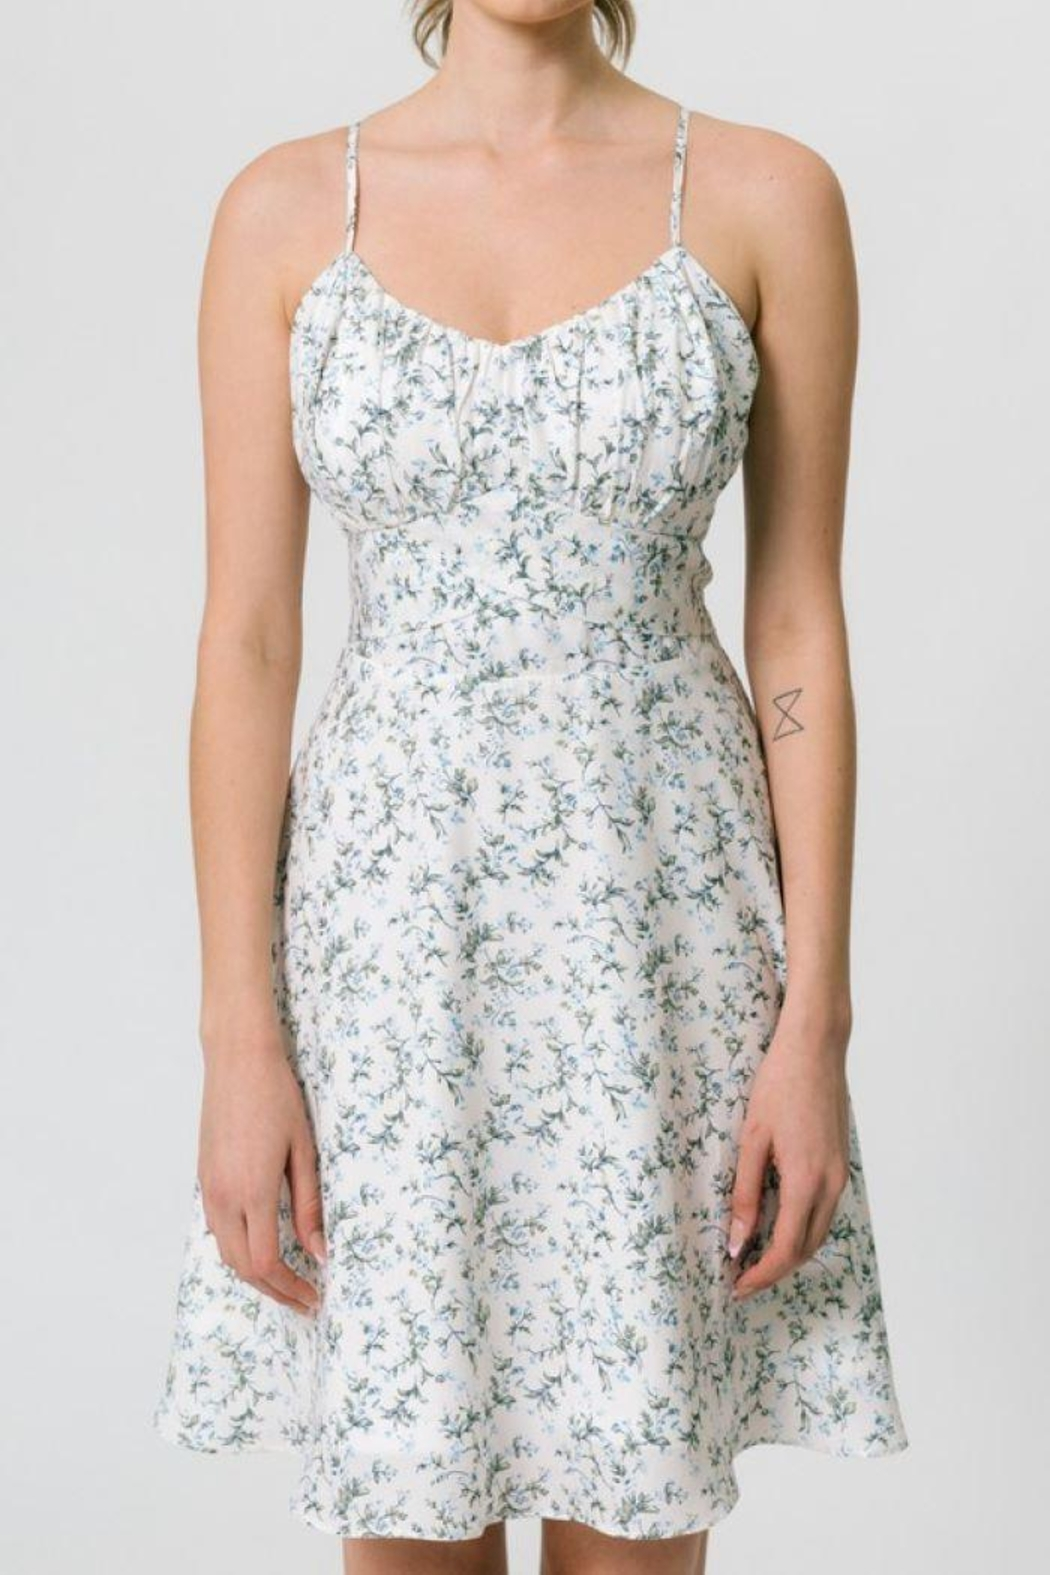 CALISTA TOOLS Flower Printed Cami Dress - Front Full Image